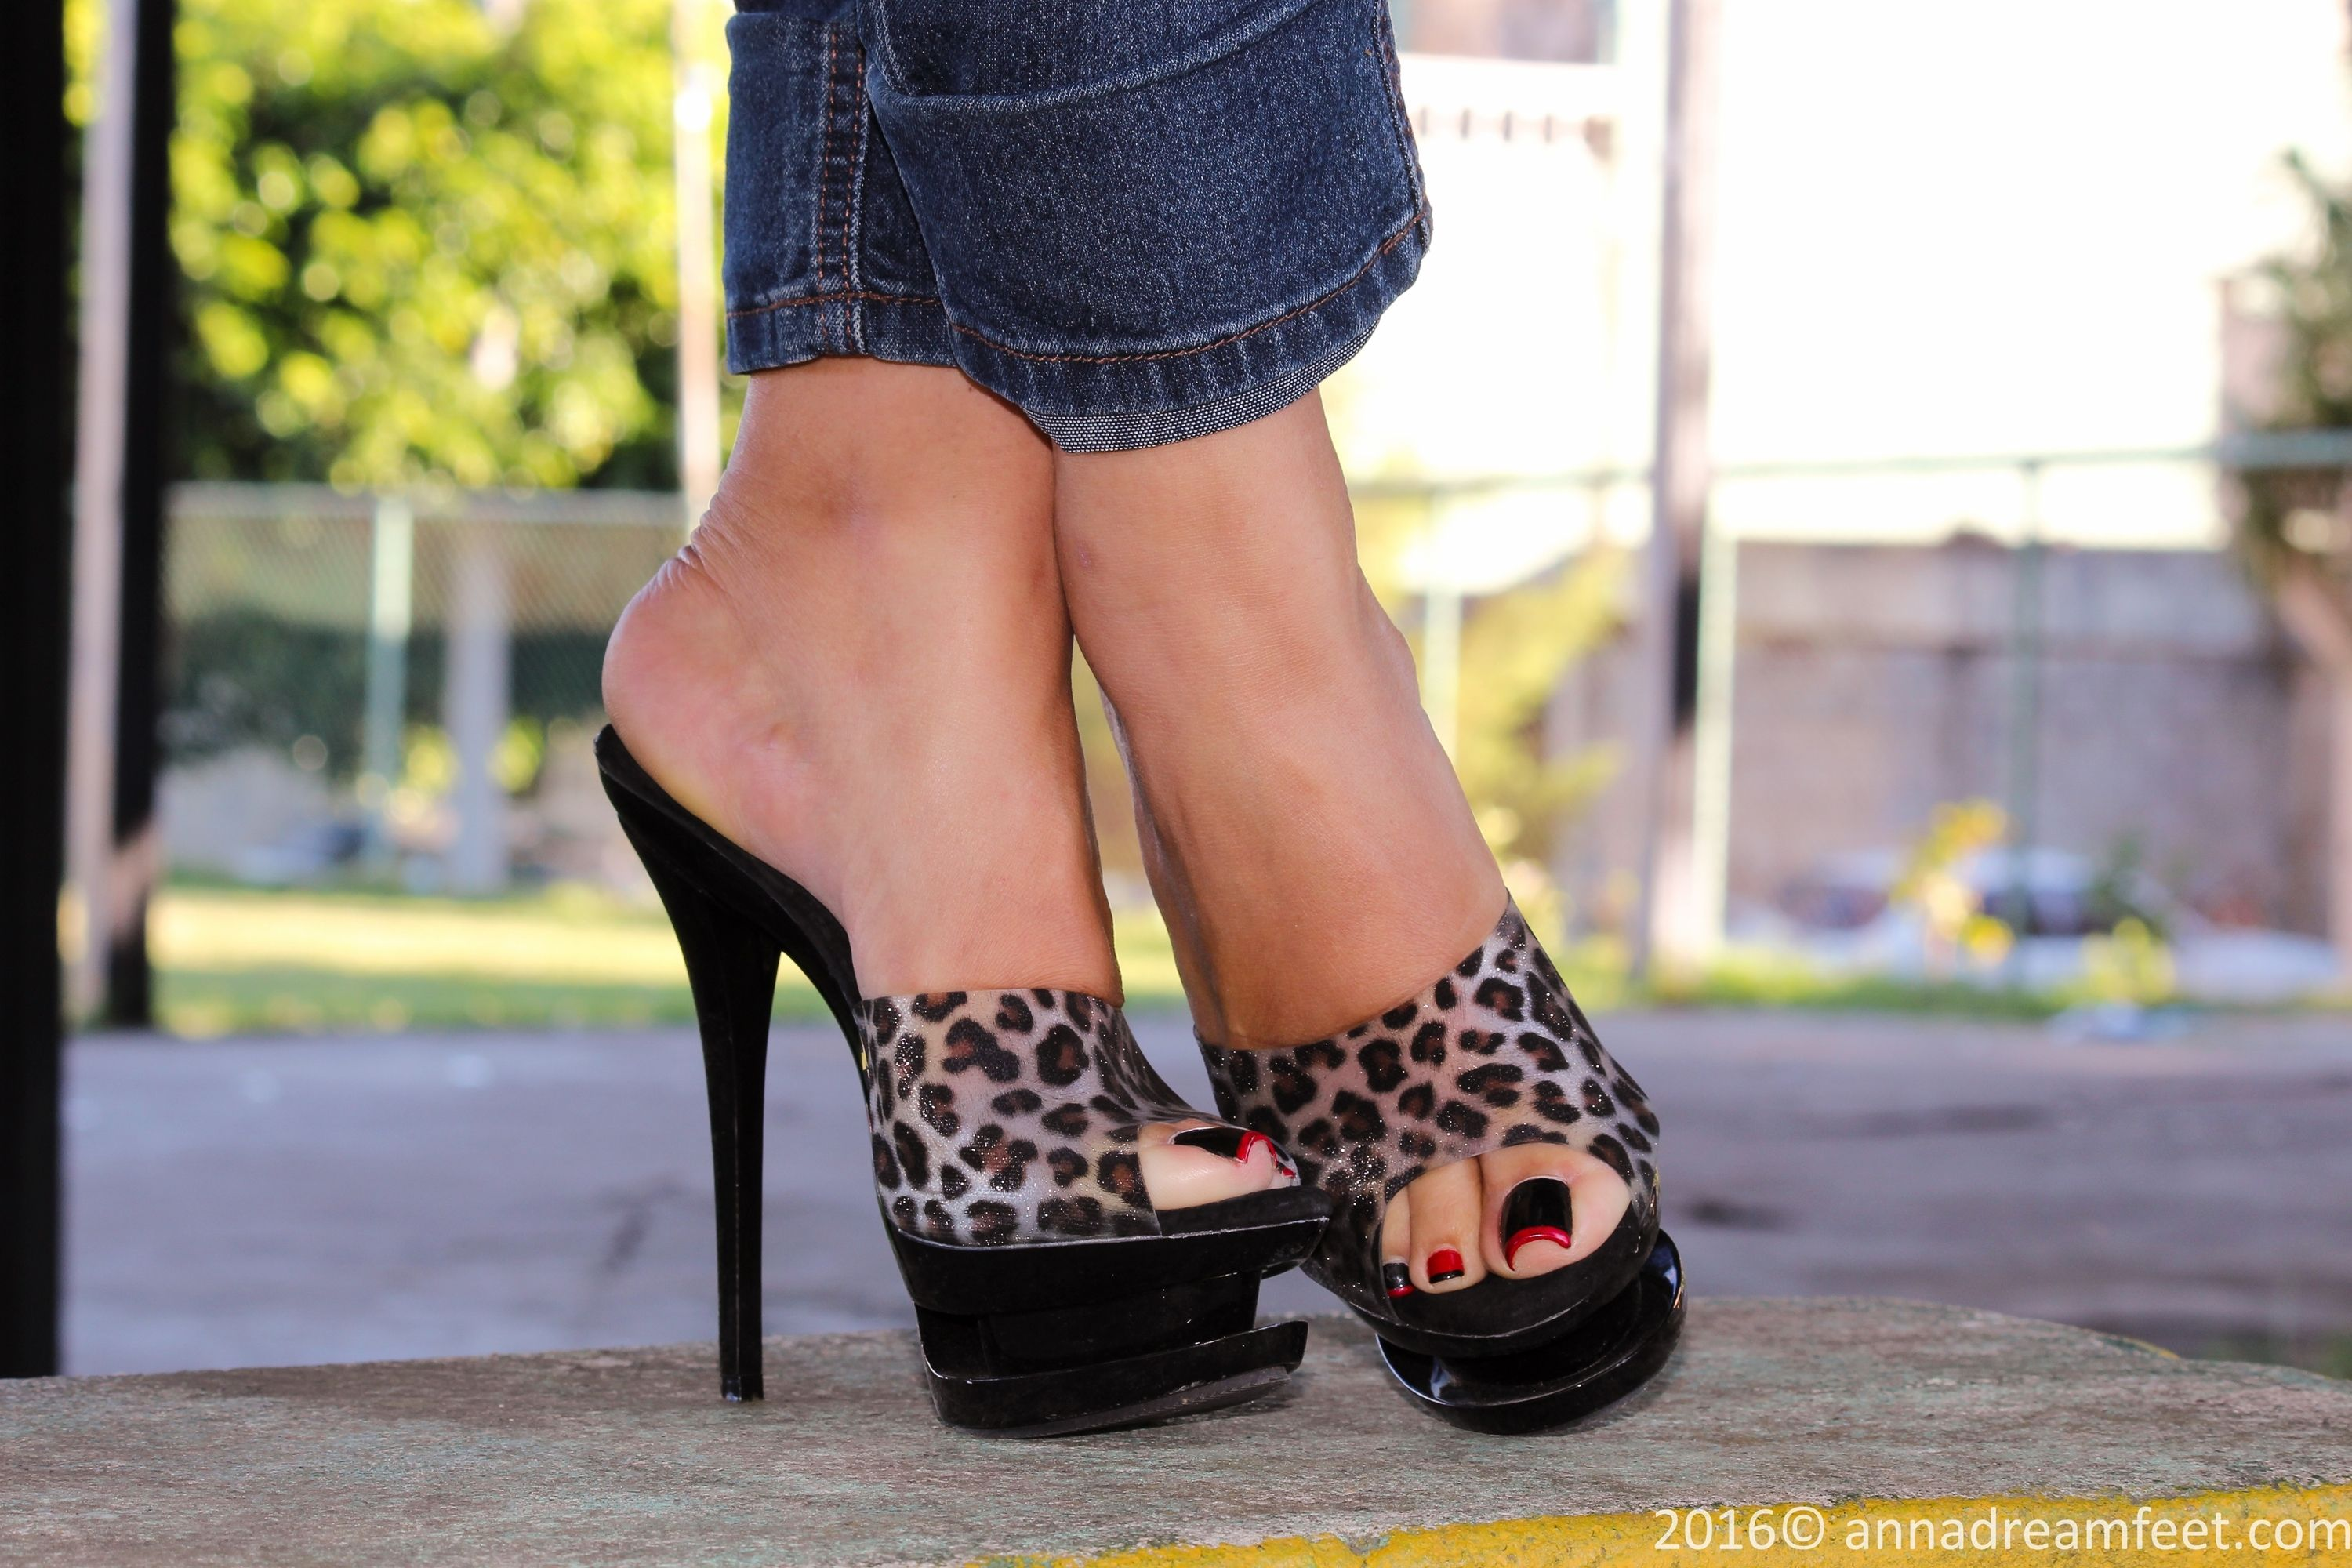 Julie skyhigh heels